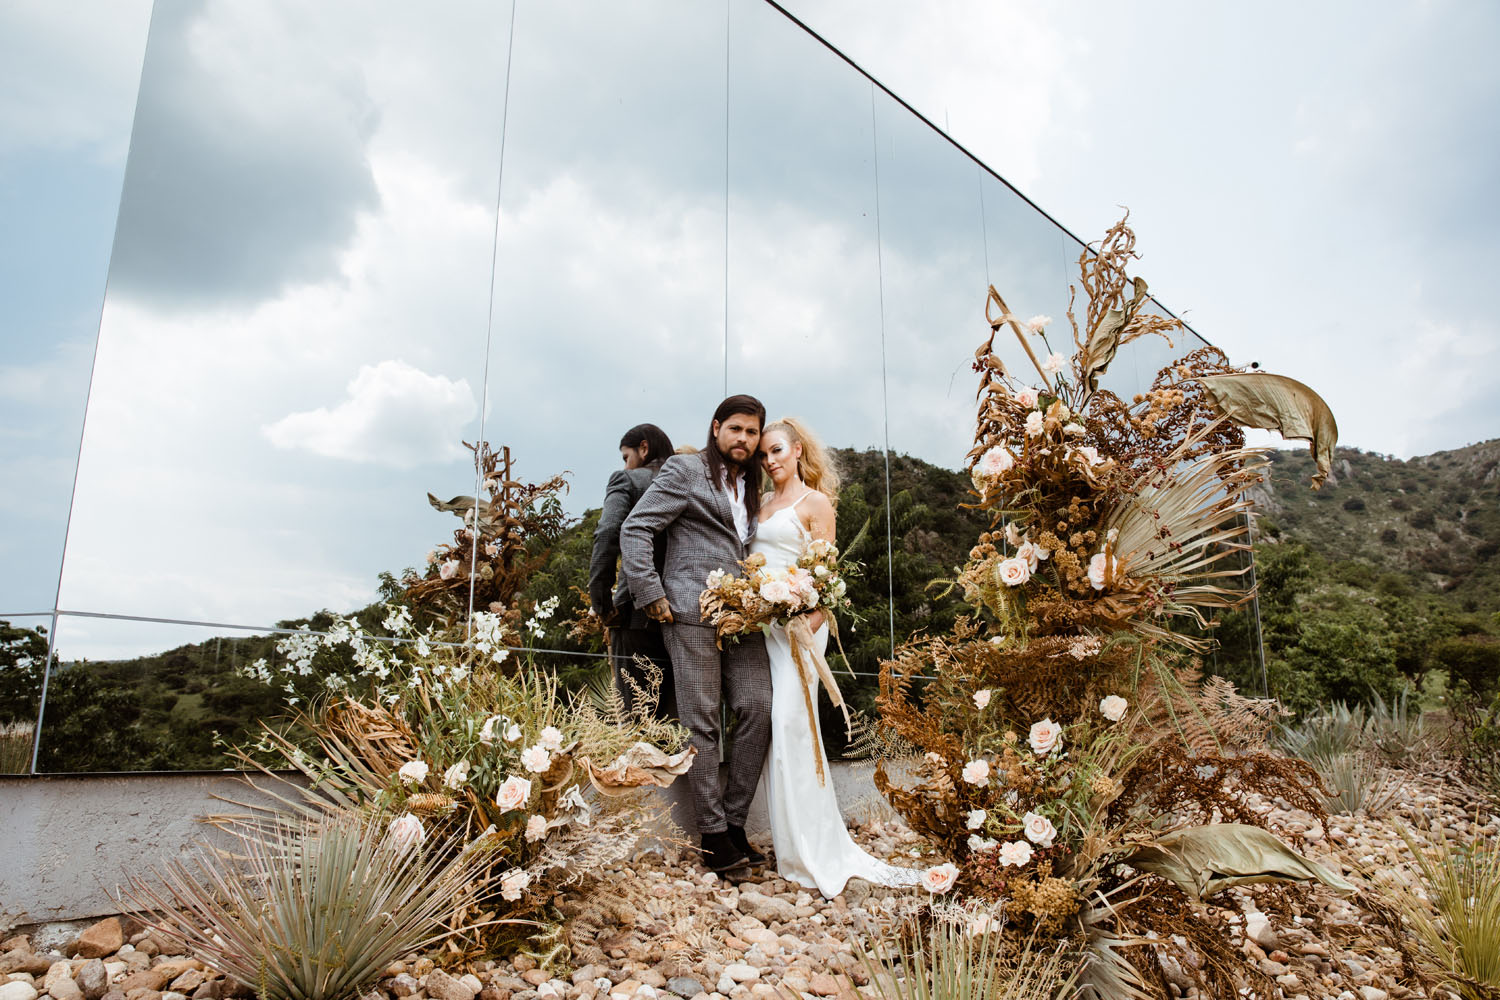 Dried Palms + Brown Wooden Elements for This Mexican Micro Wedding